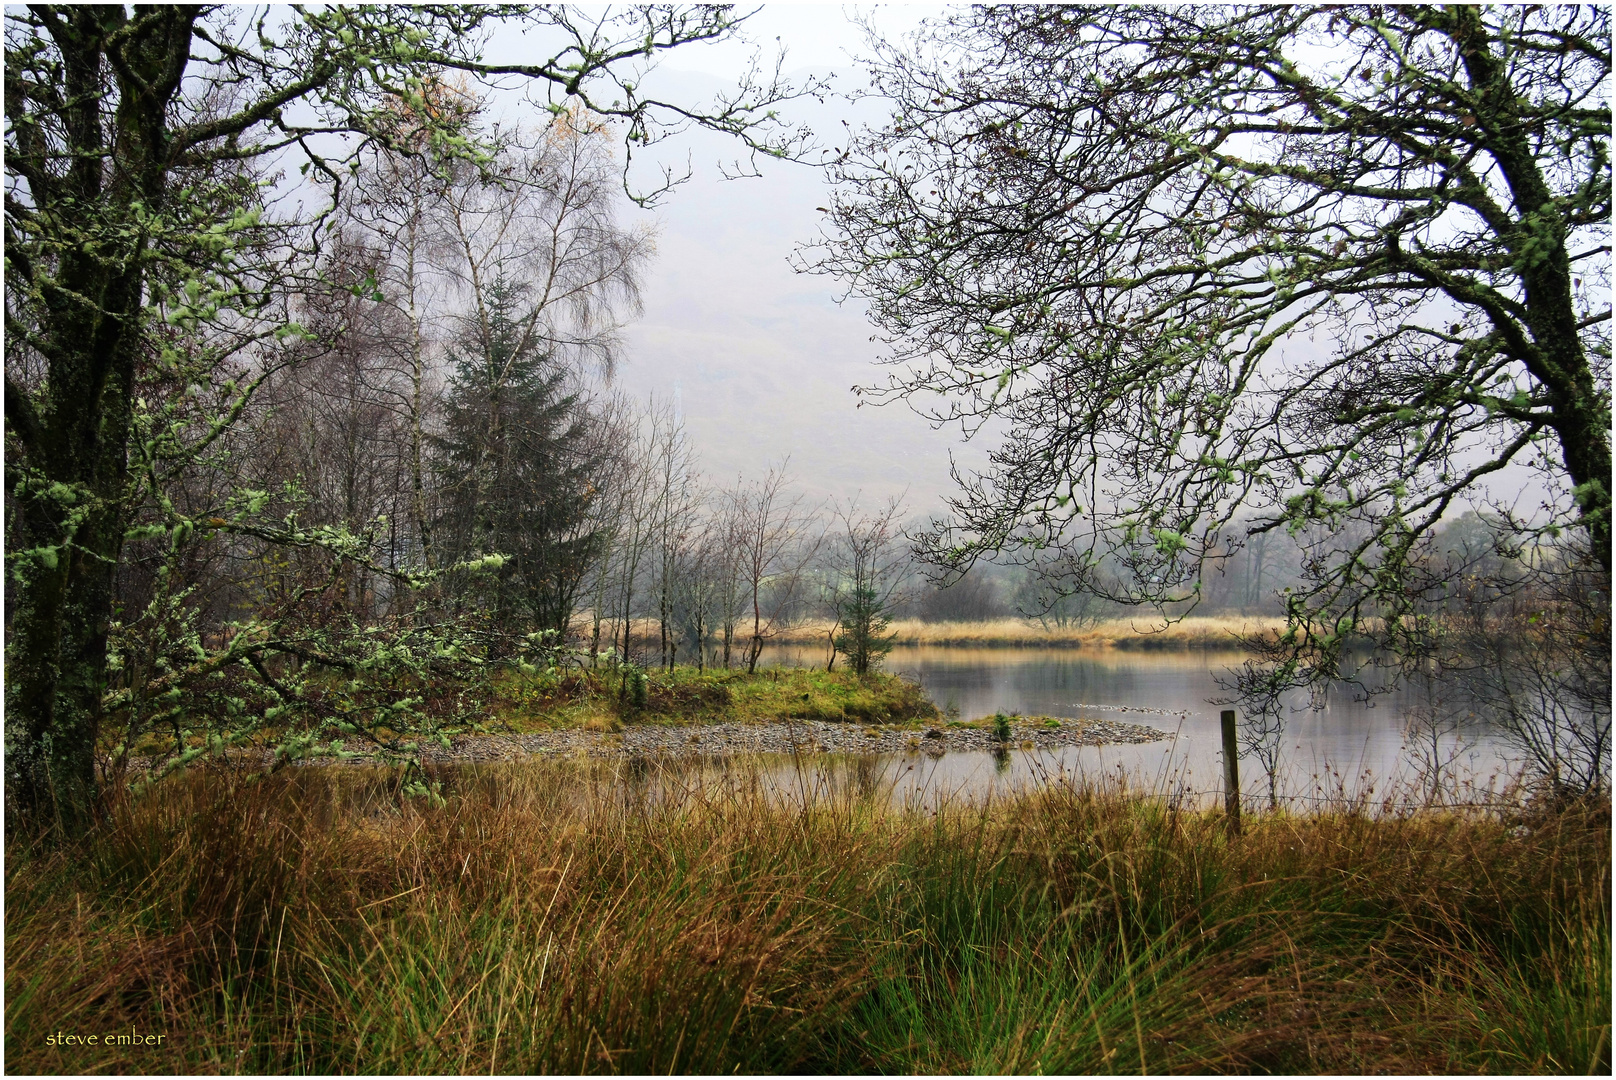 In the Scottish Mists of Argyll and Bute